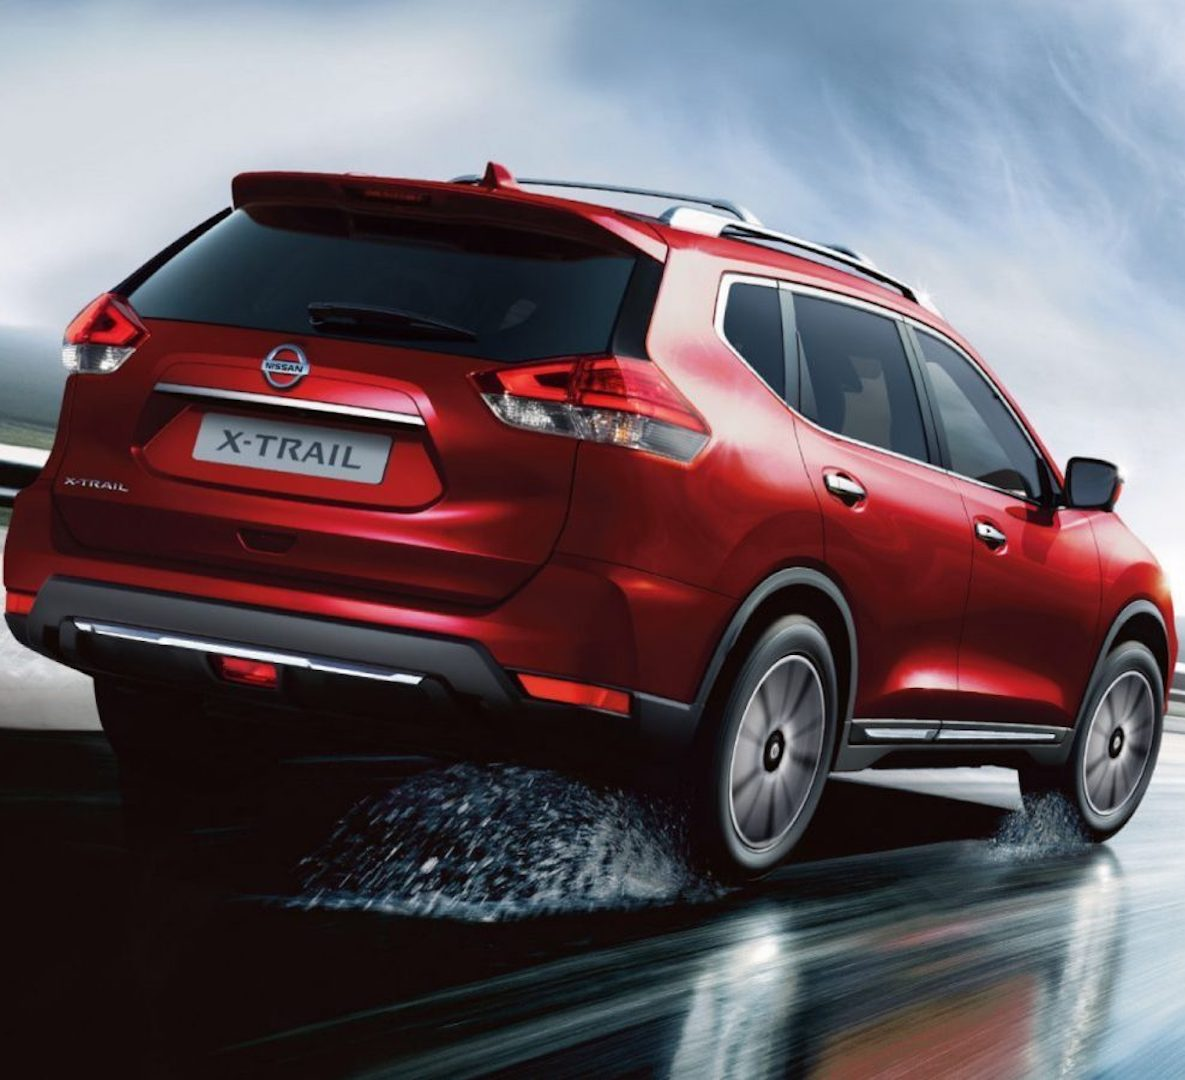 motores do Nissan X-Trail